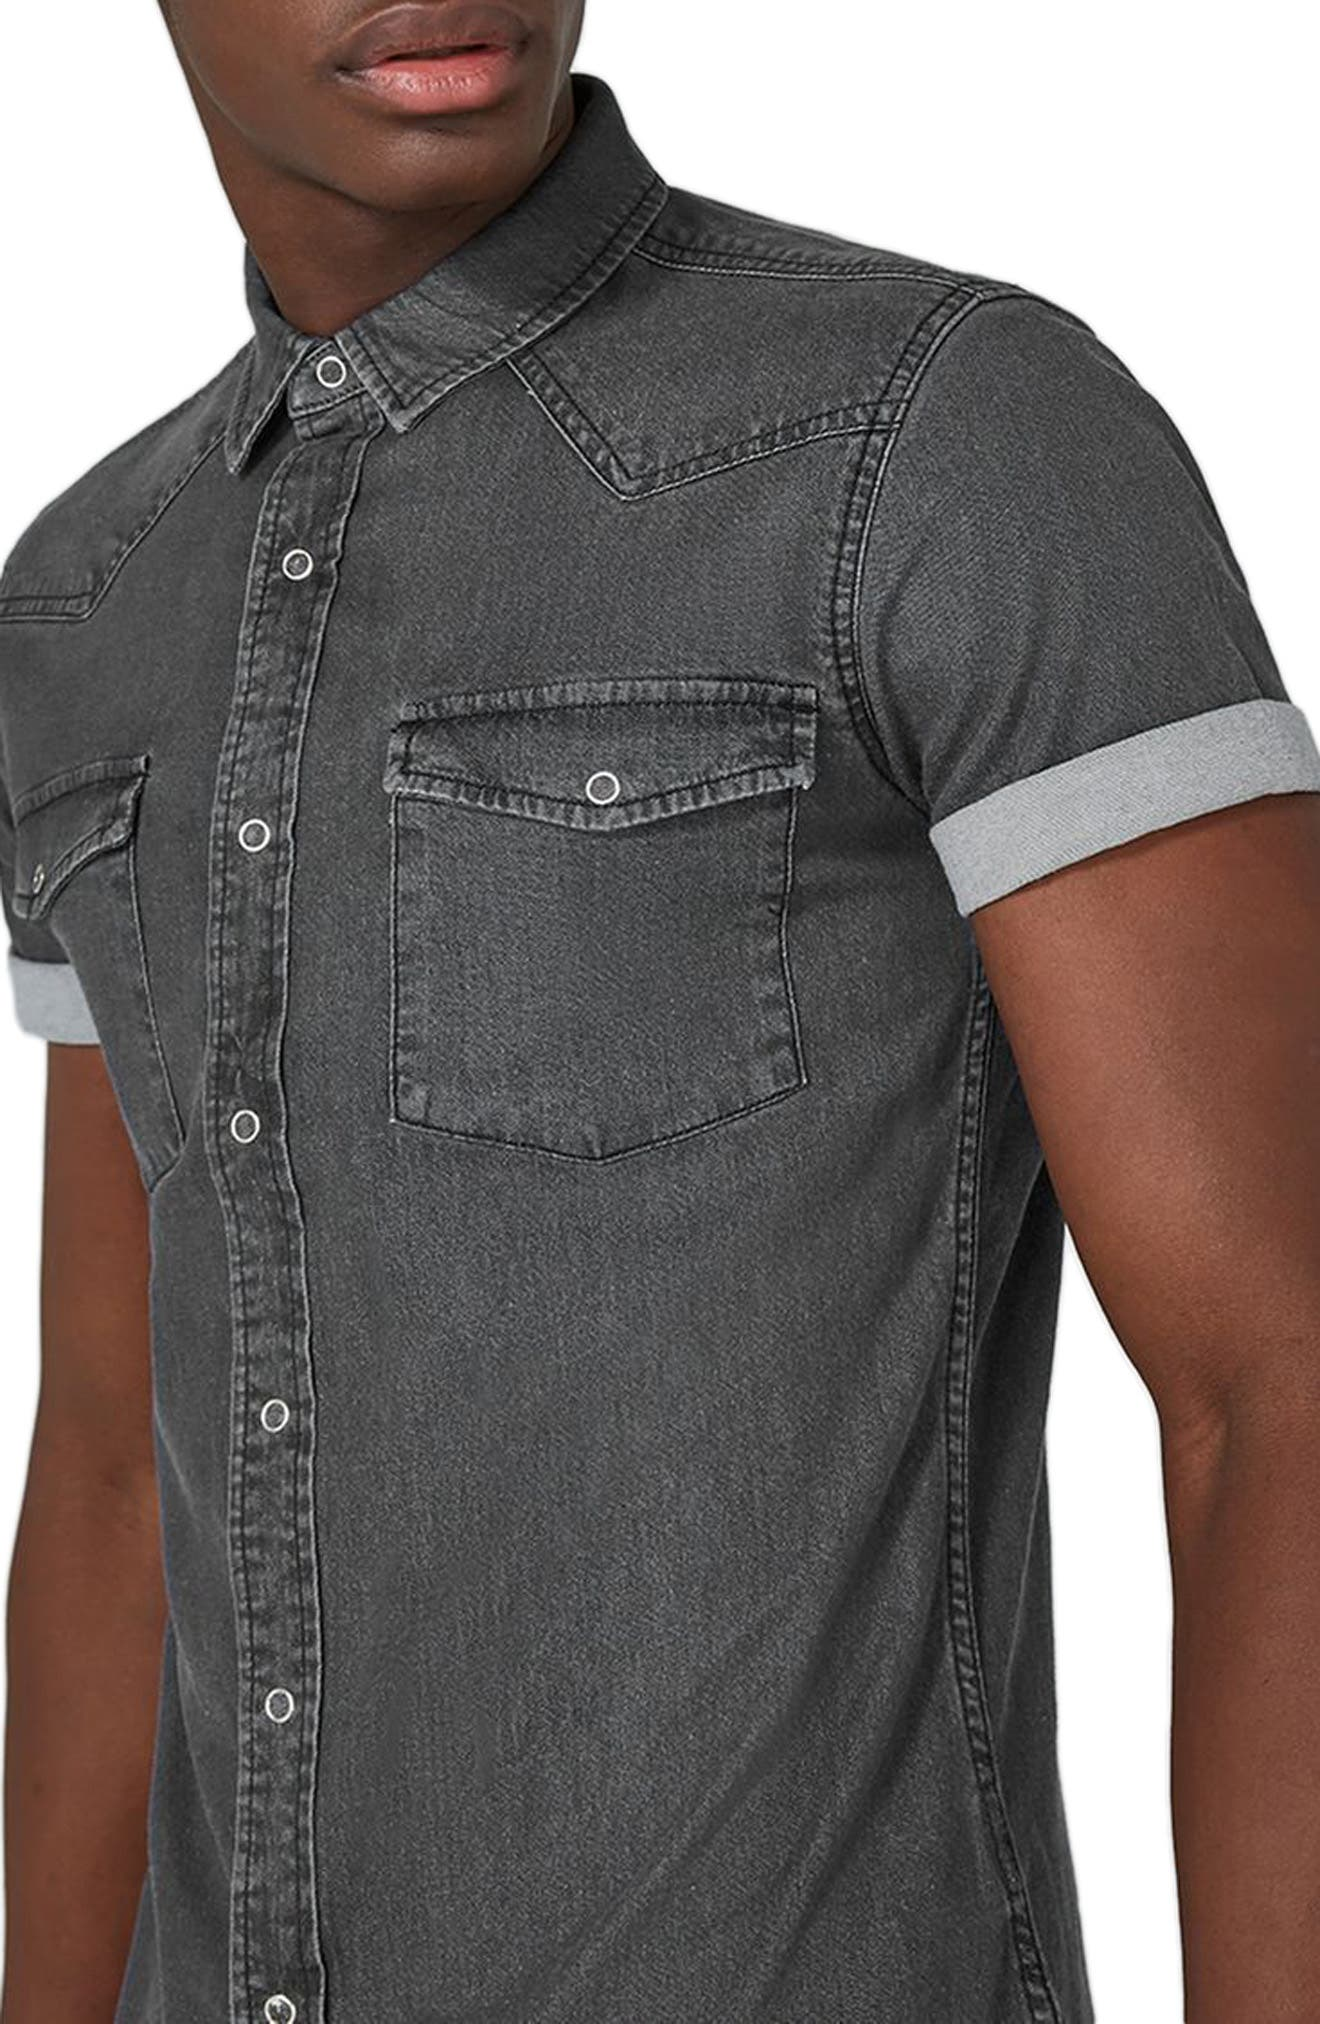 Muscle Fit Denim Shirt,                             Alternate thumbnail 3, color,                             001